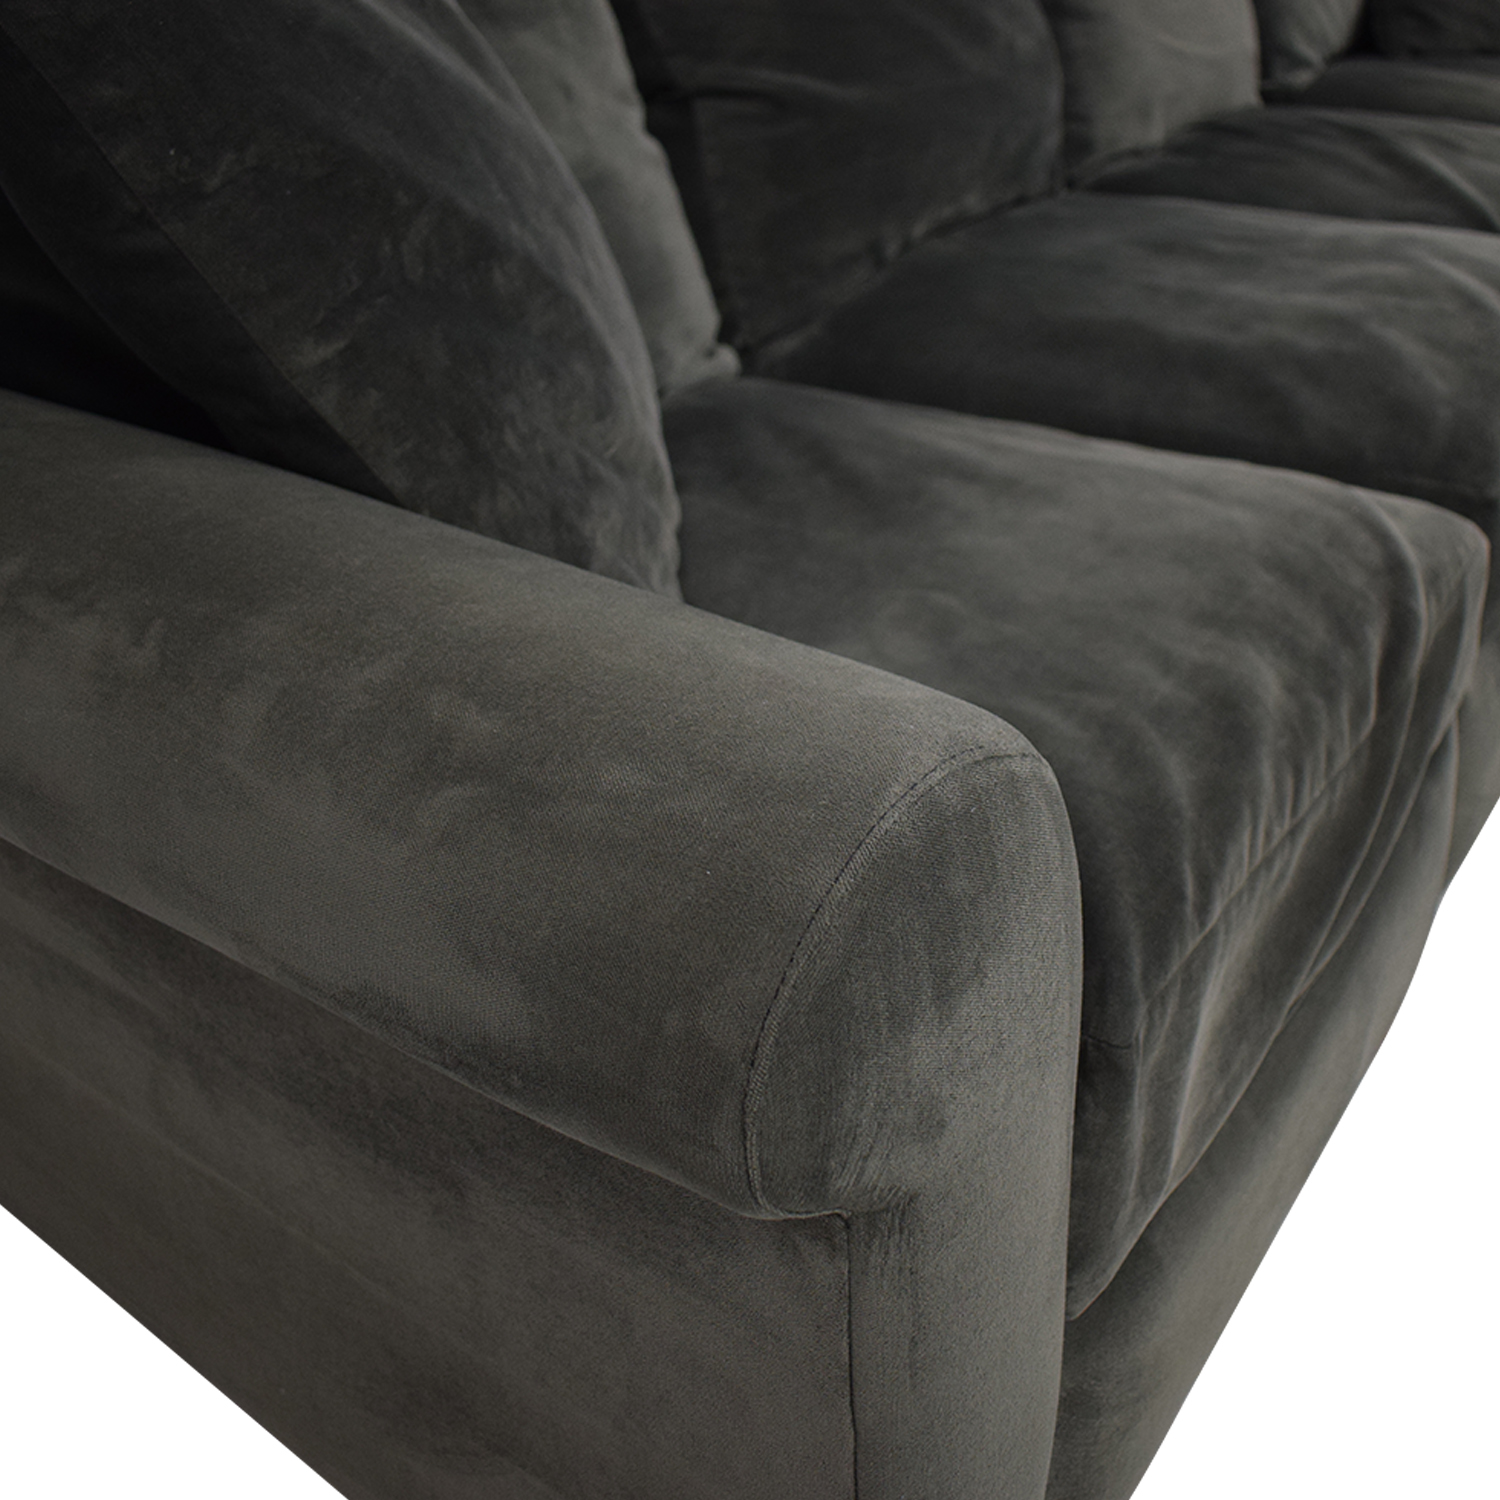 shop Macy's Macy's Chaise Sectional Sofa online